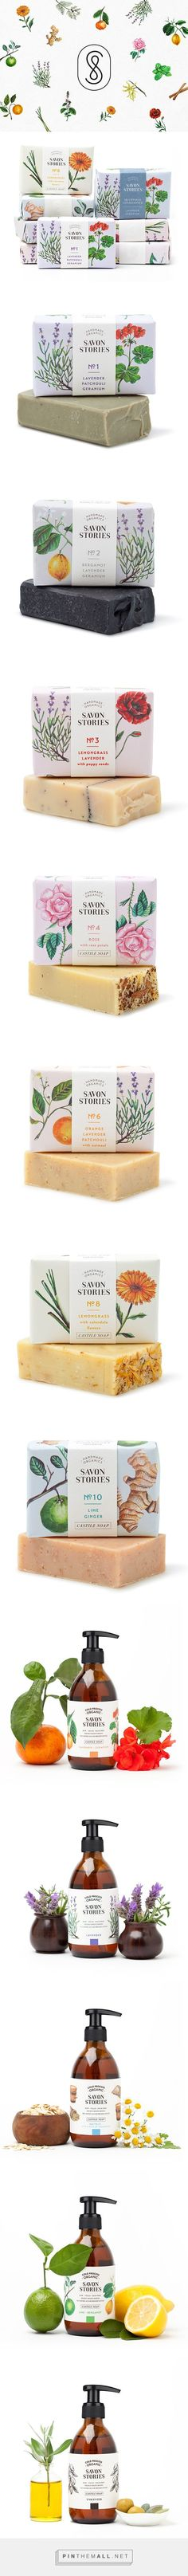 Really love this branding. Savon Stories soaps by Menta. #packaging #design